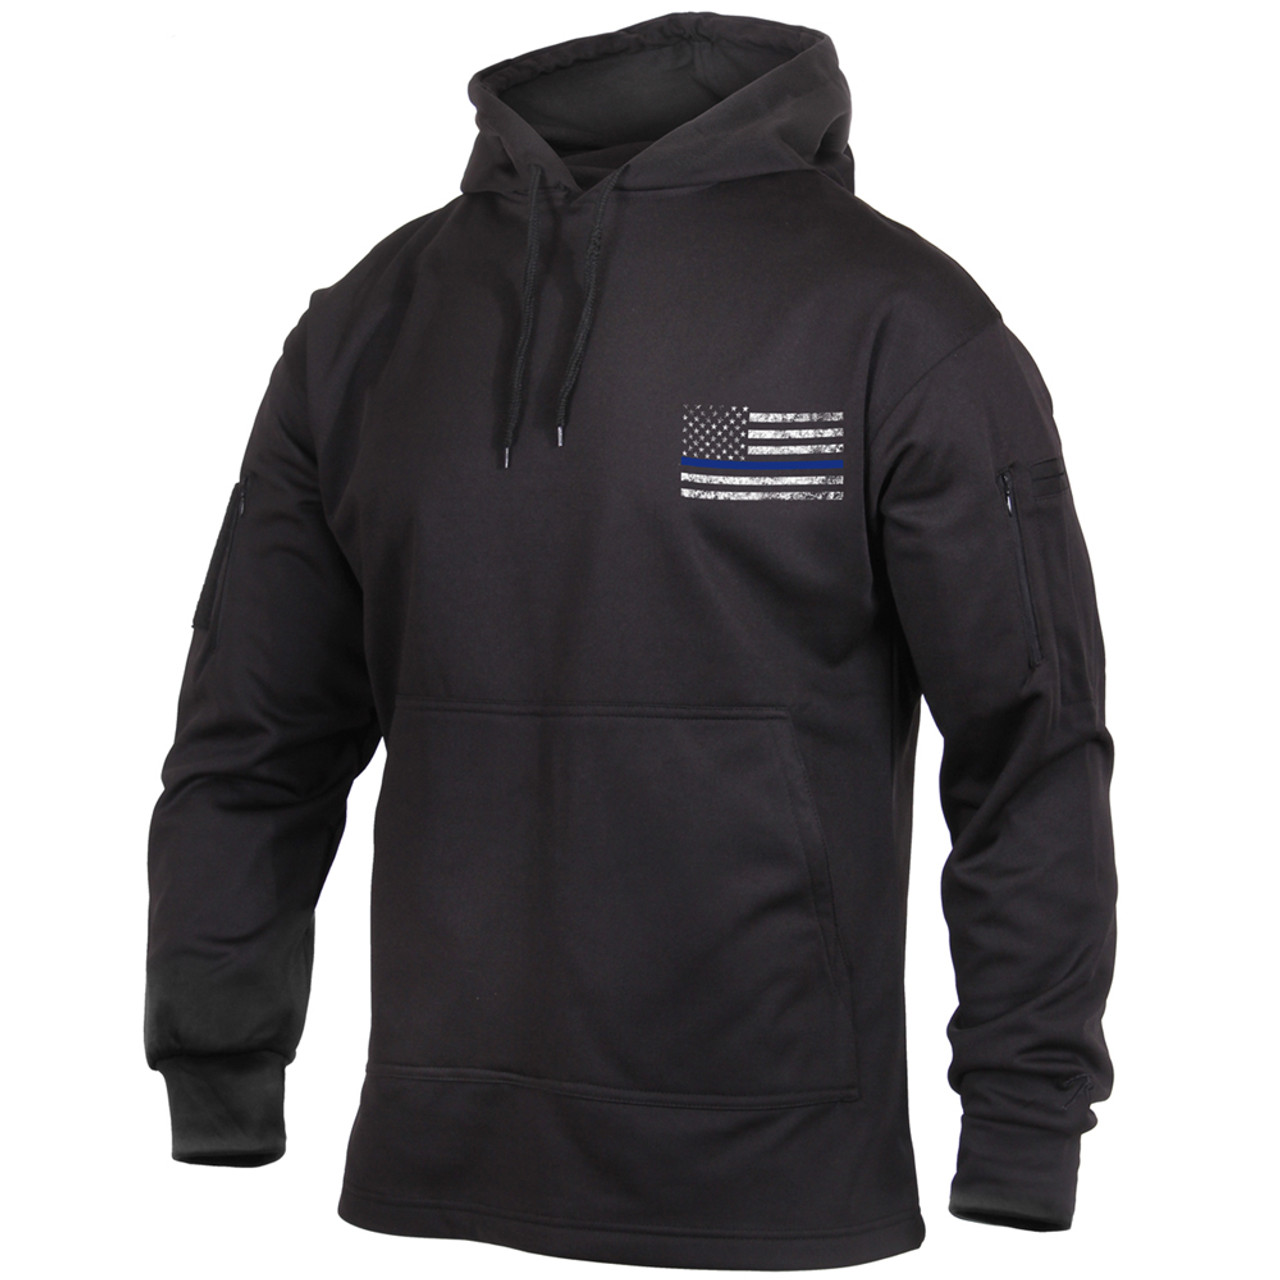 9ed3323a6f8 Thin Blue Line Concealed Carry Black Sweatshirt with Flag - Atlantic  Tactical Inc